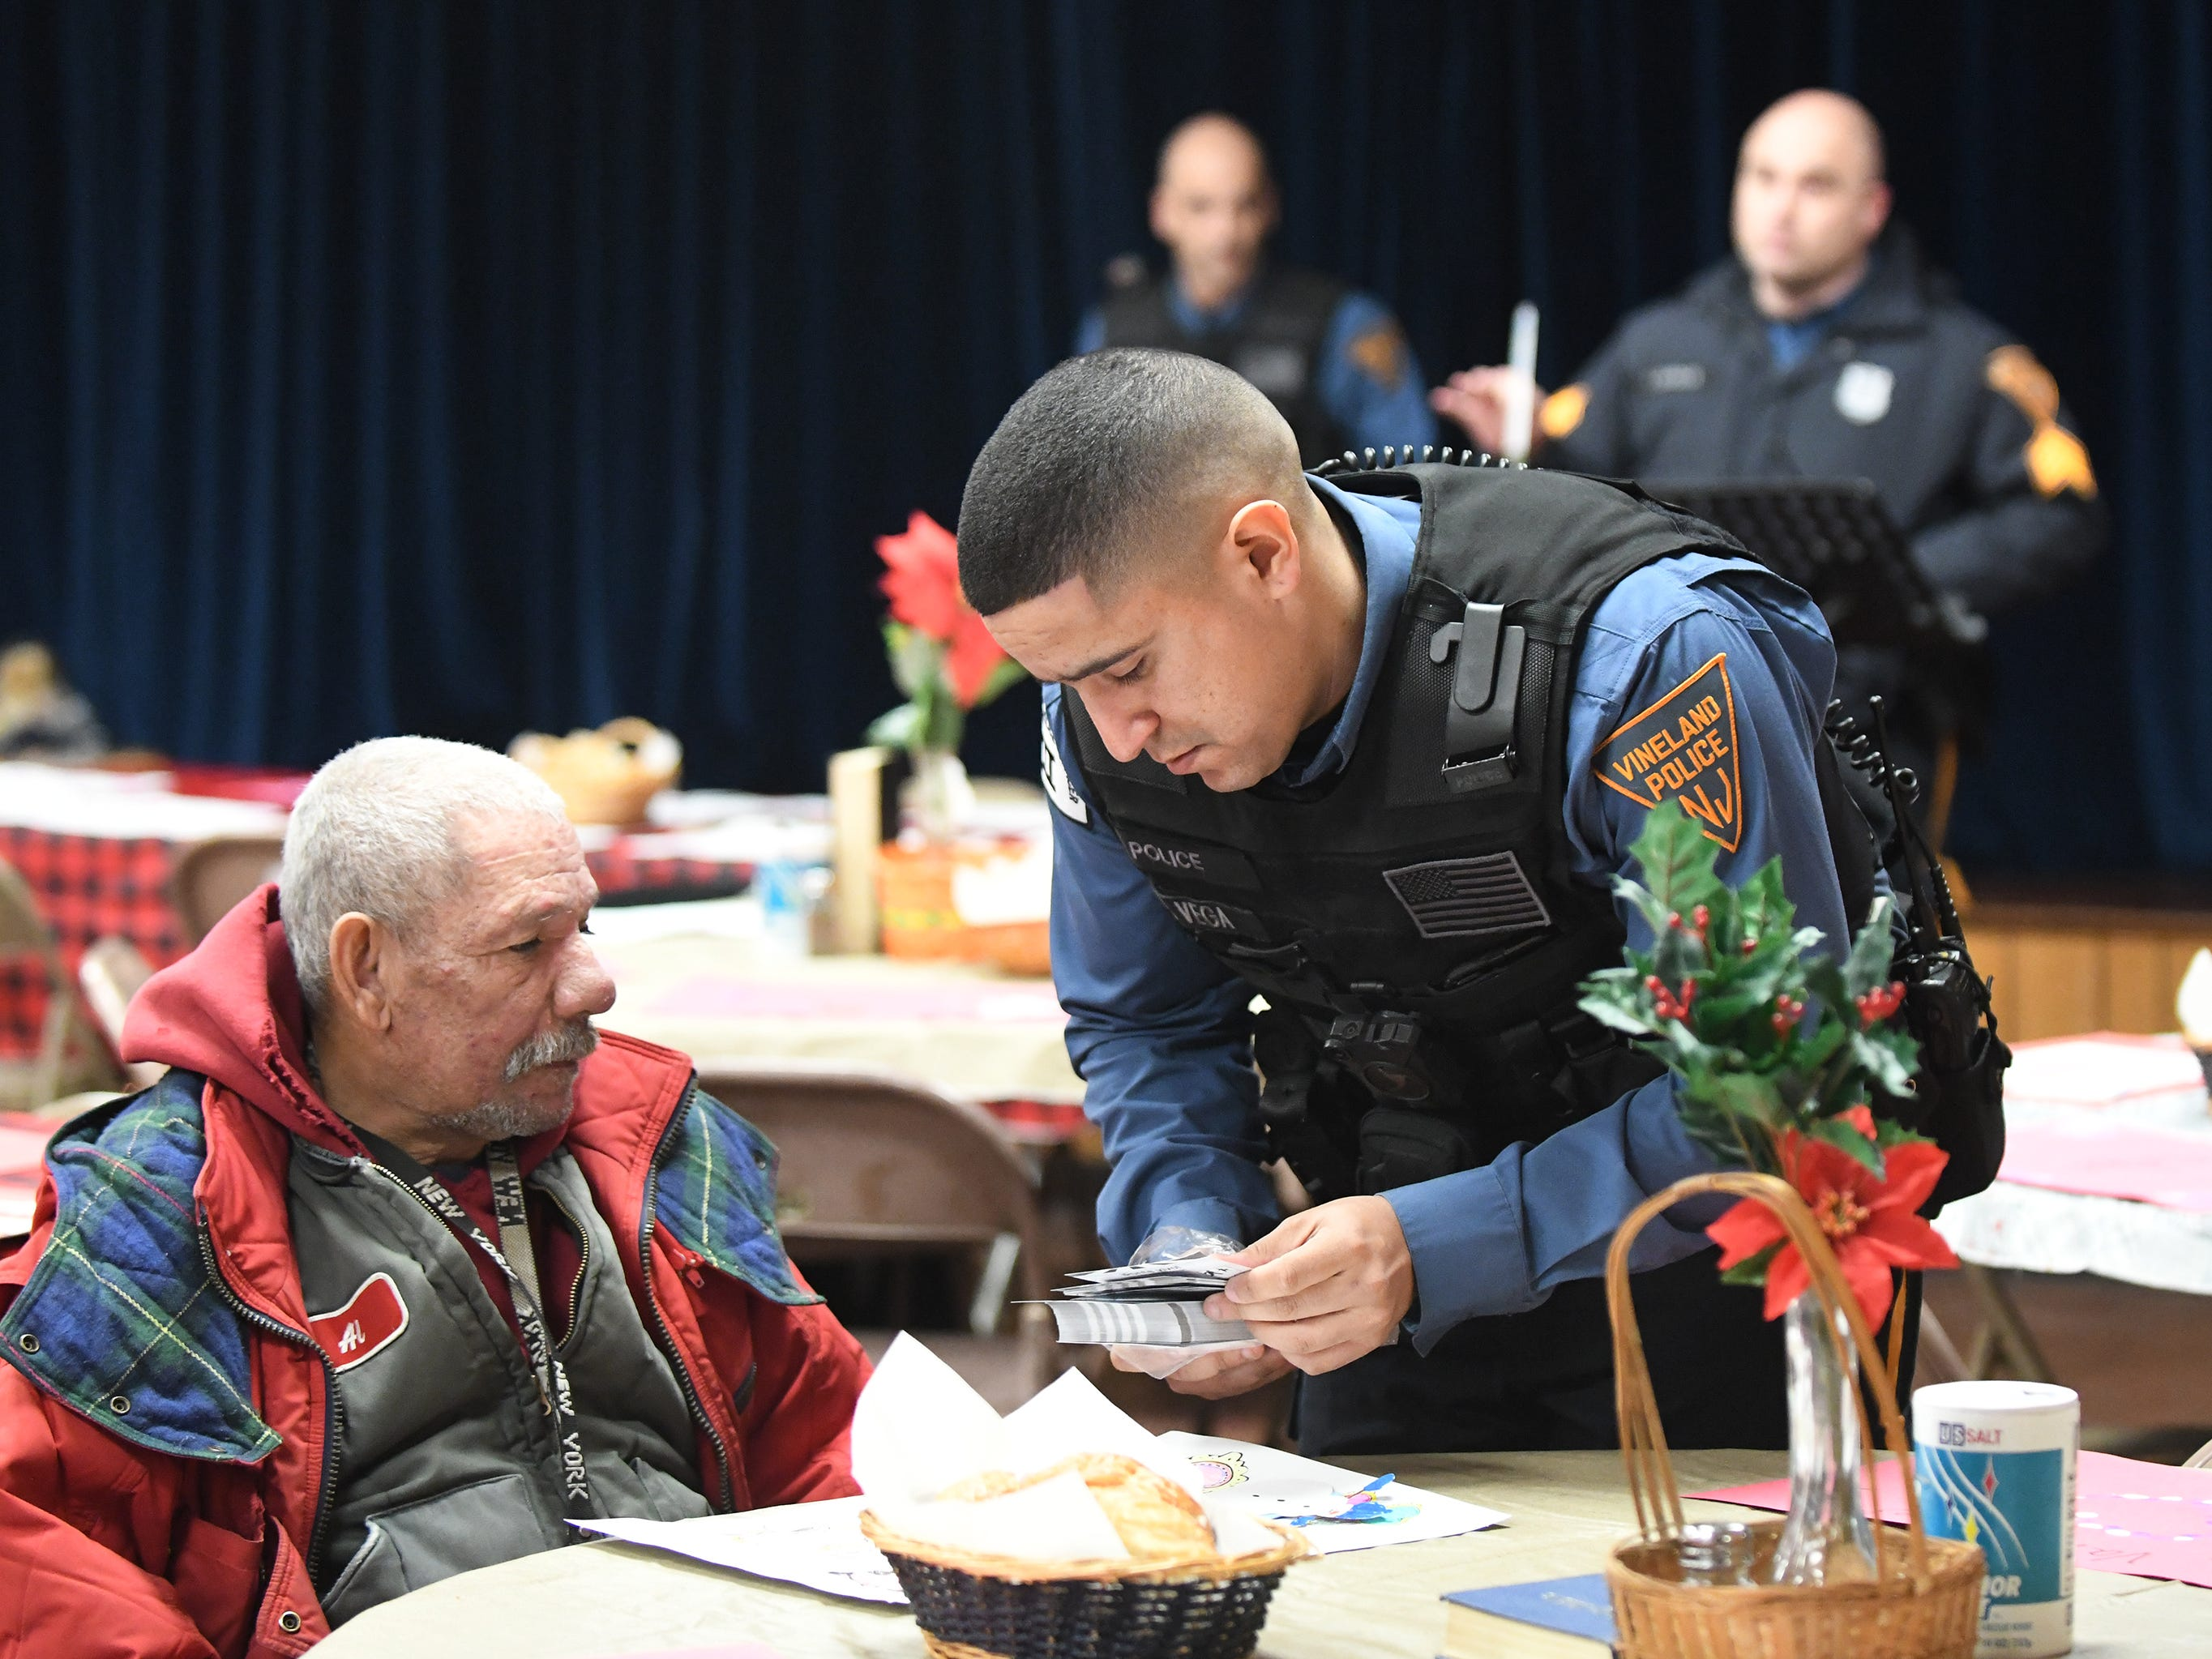 Vineland Police officer Ed Vega hands out pedestrian safety information following a memorial service for Jeffrey Cuss at the Spirit & Truth Ministries Soup Kitchen in Vineland on Thursday, Feb. 14, 2019.